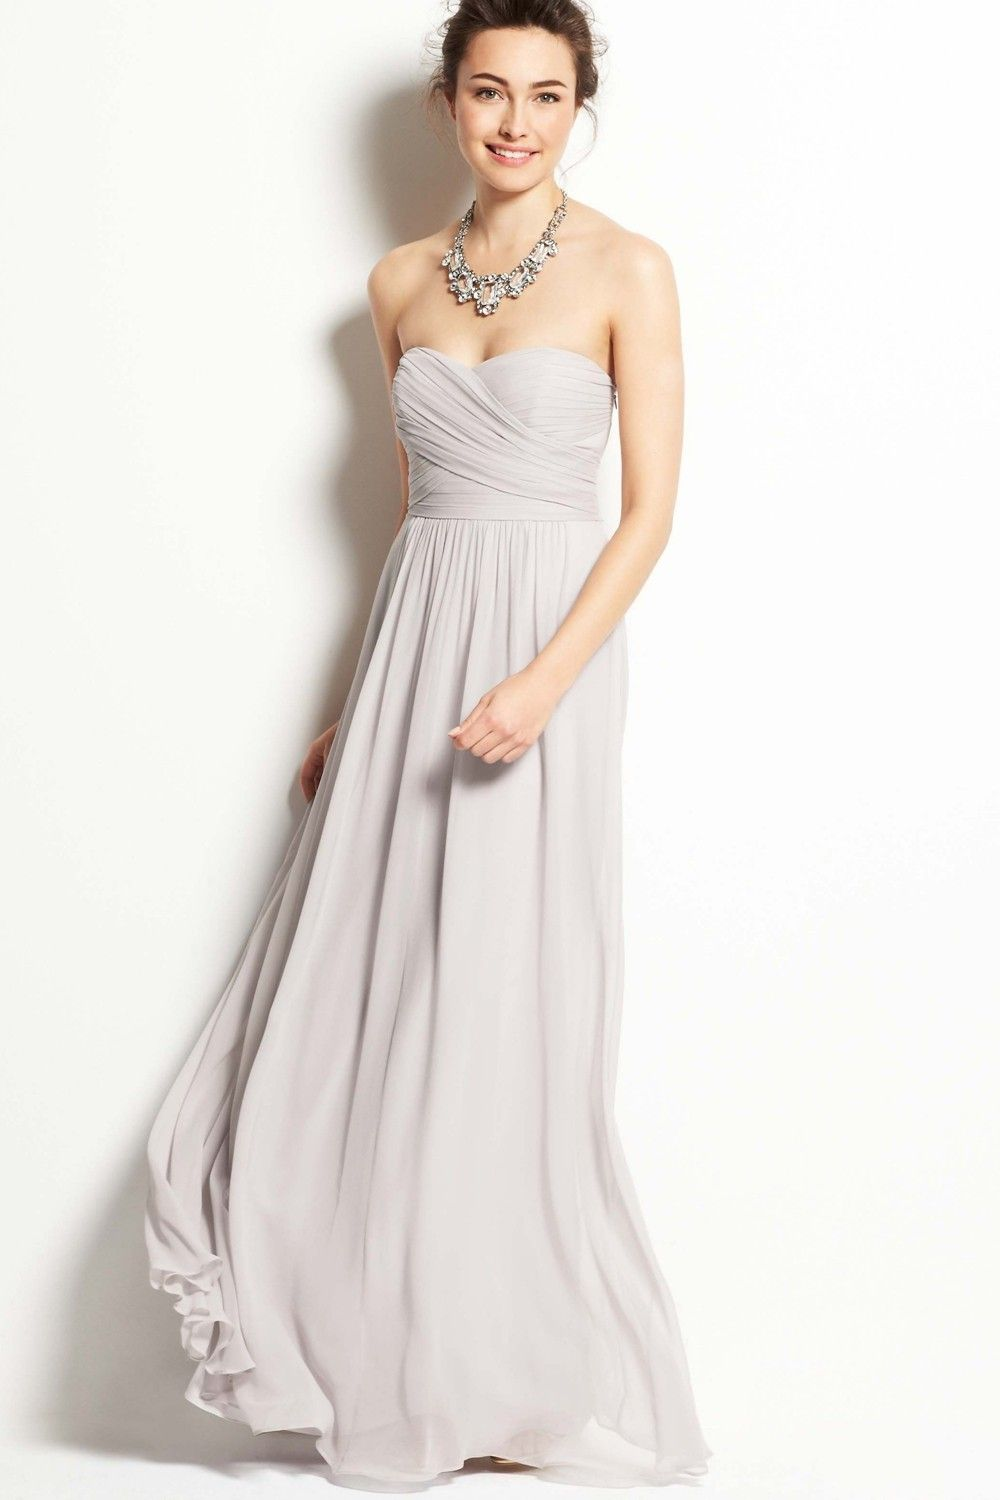 The elegant strapless sweetheart light grey chiffon floor length the elegant strapless sweetheart light grey chiffon floor length bridesmaid dress prom dress ombrellifo Choice Image